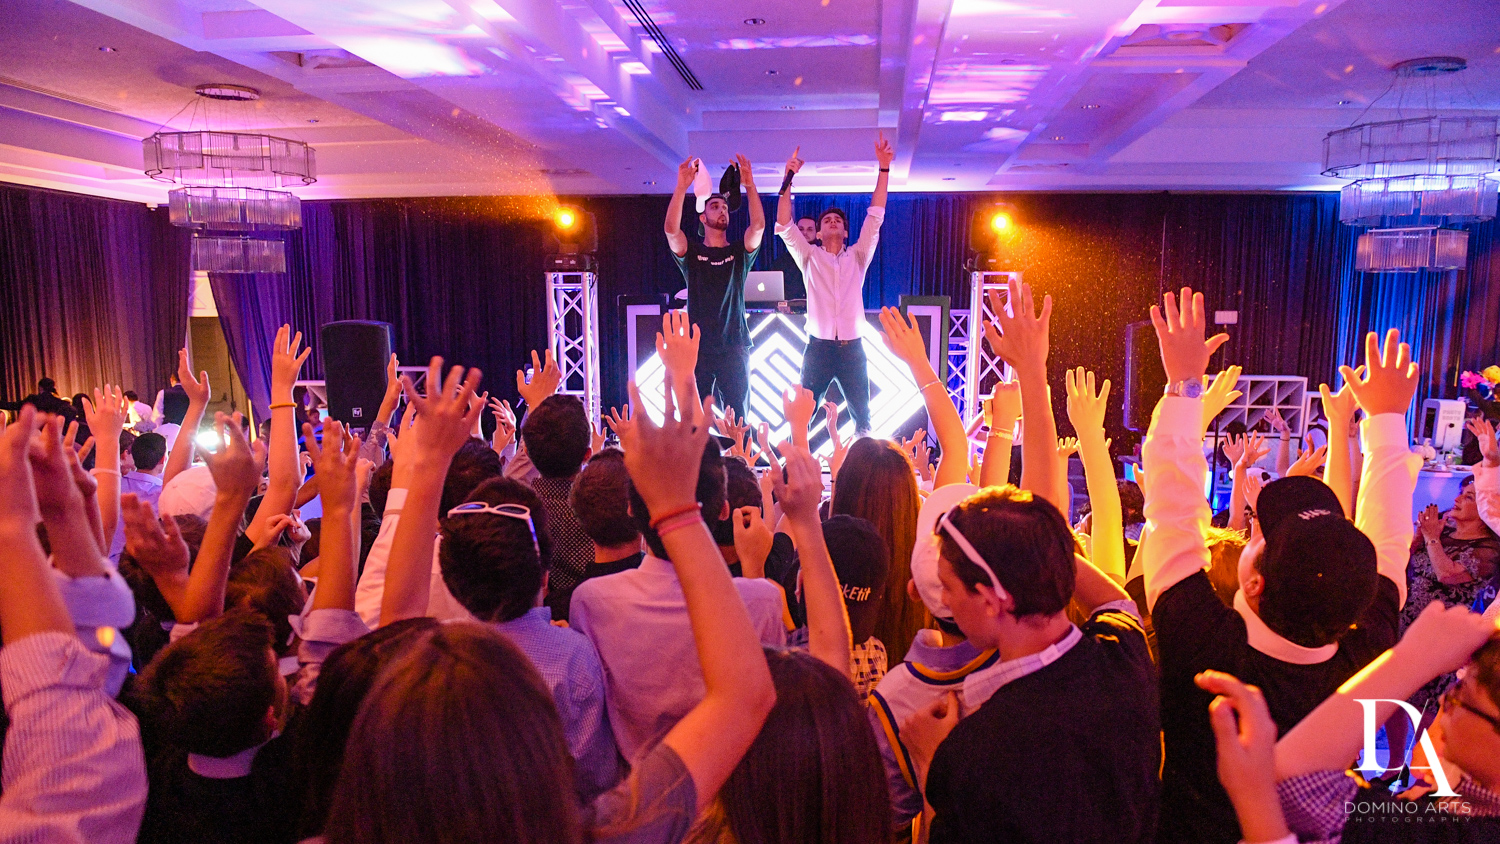 Fun party at Luxury B'Nai Mitzvah at Woodfield Country Club by Domino Arts Photography